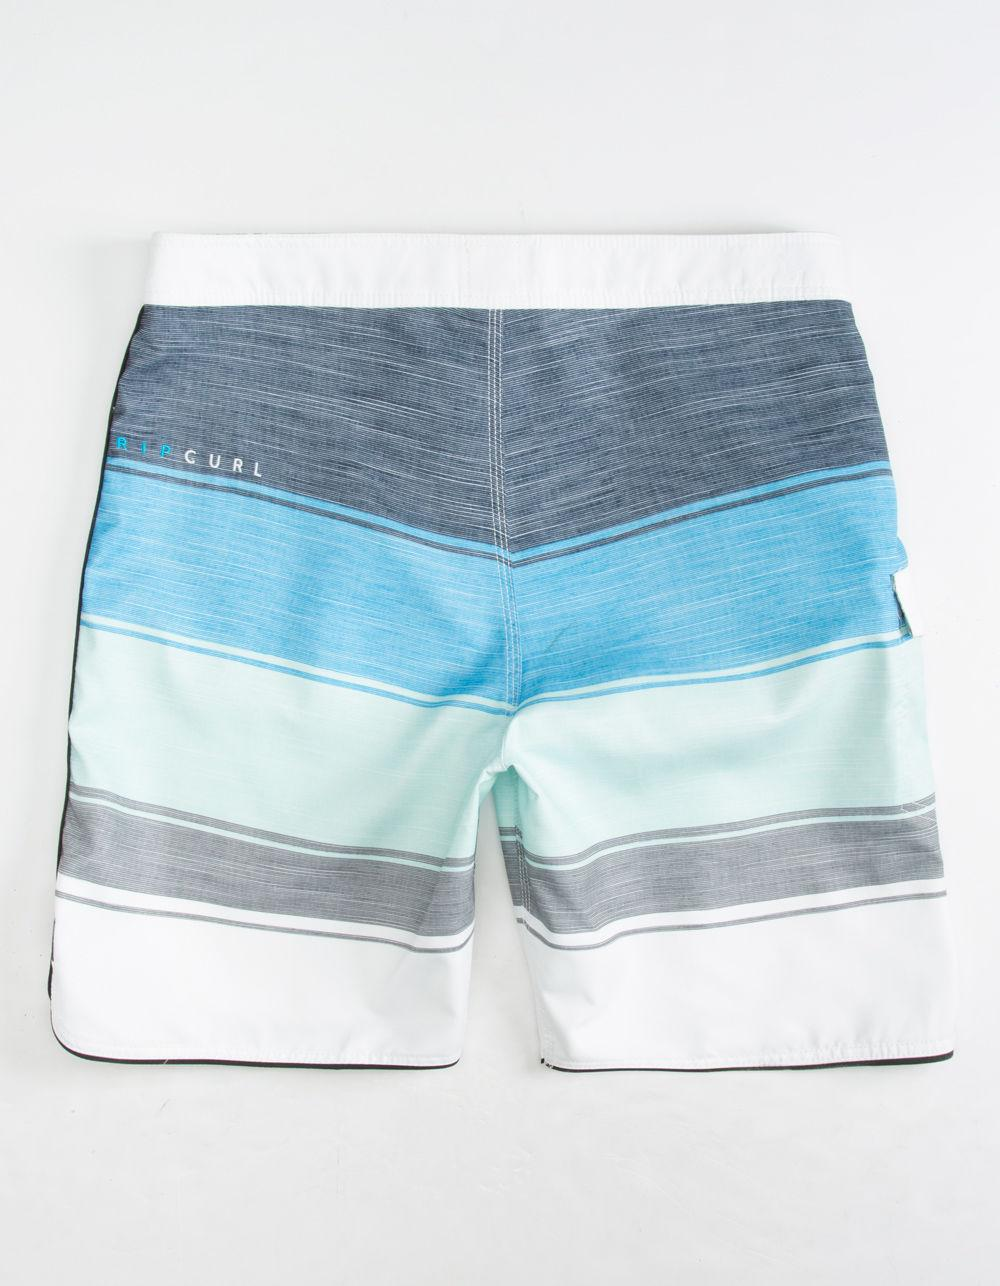 a07a44379b Rip Curl State Park Mens Boardshorts in Blue for Men - Lyst